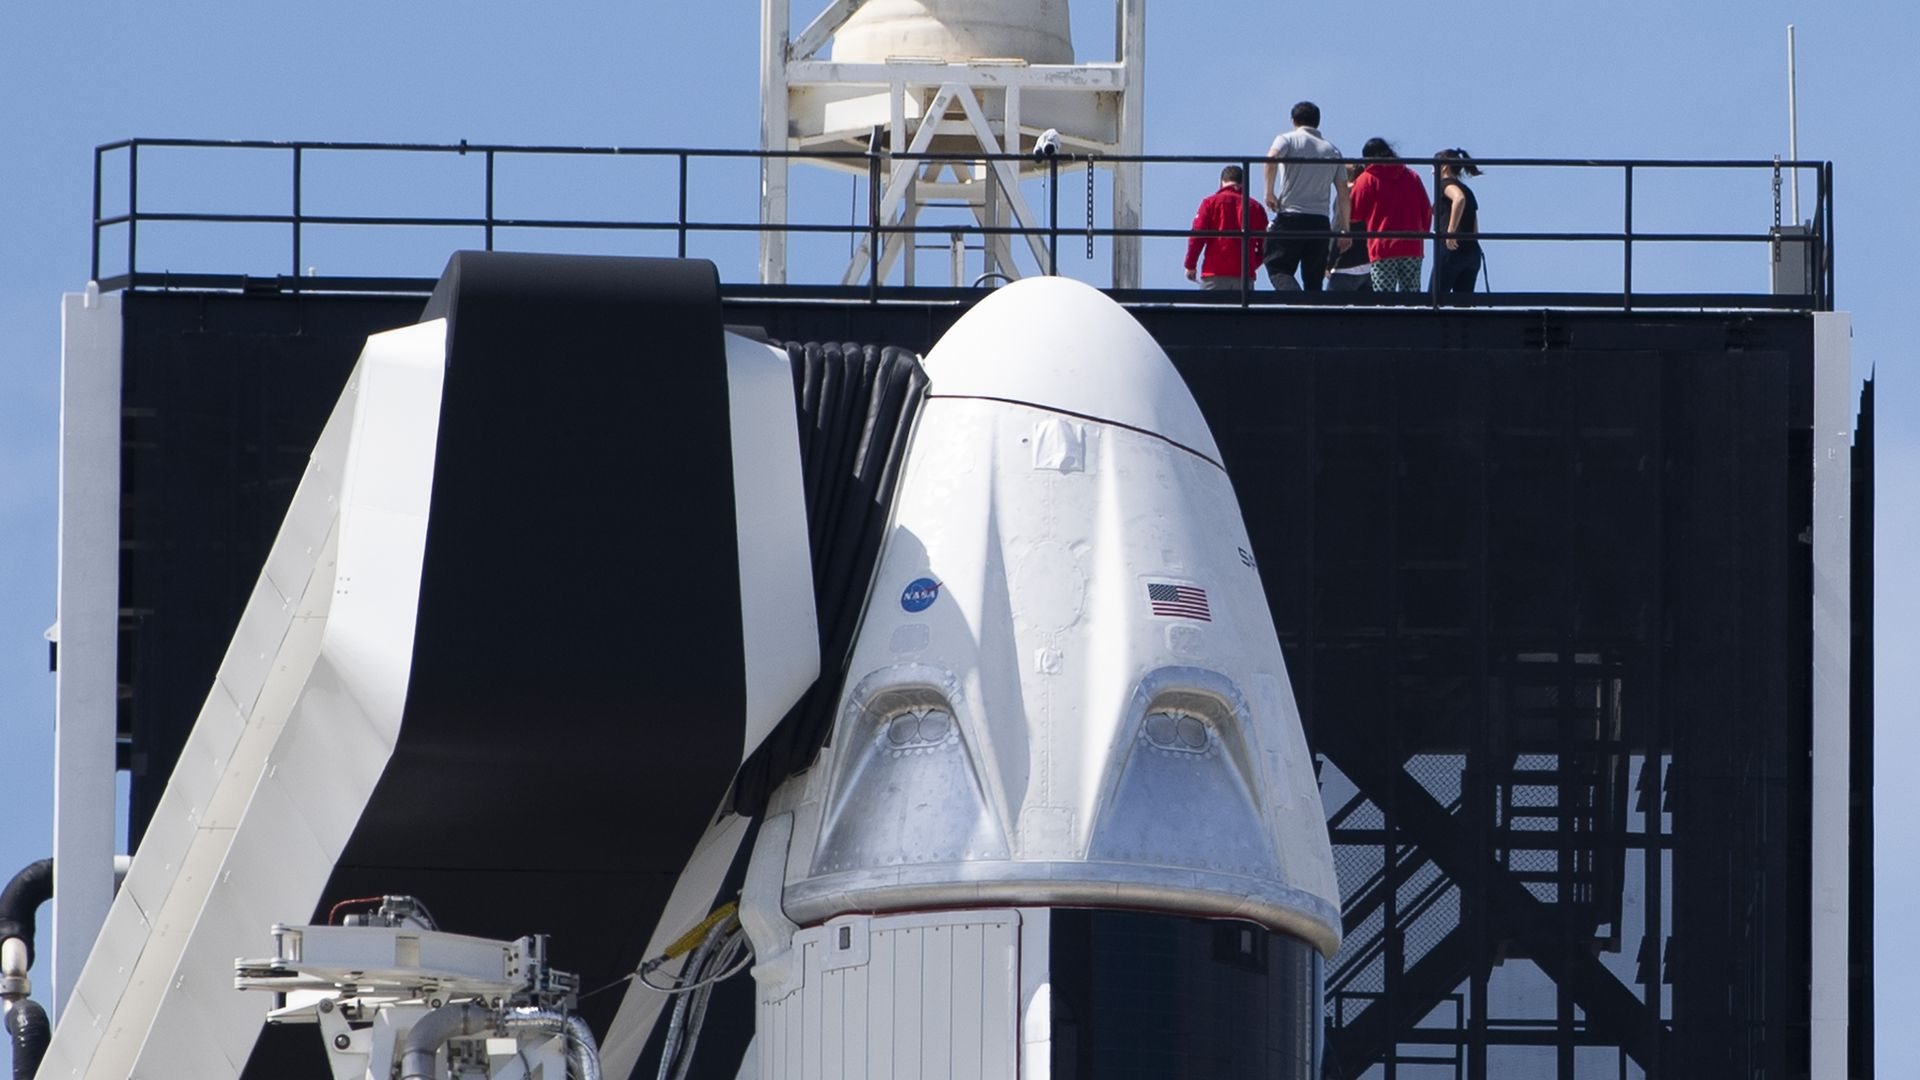 The SpaceX Falcon 9 rocket with the unmanned Crew Dragon capsule on its nose sits at Kennedy Space Center in Florida.